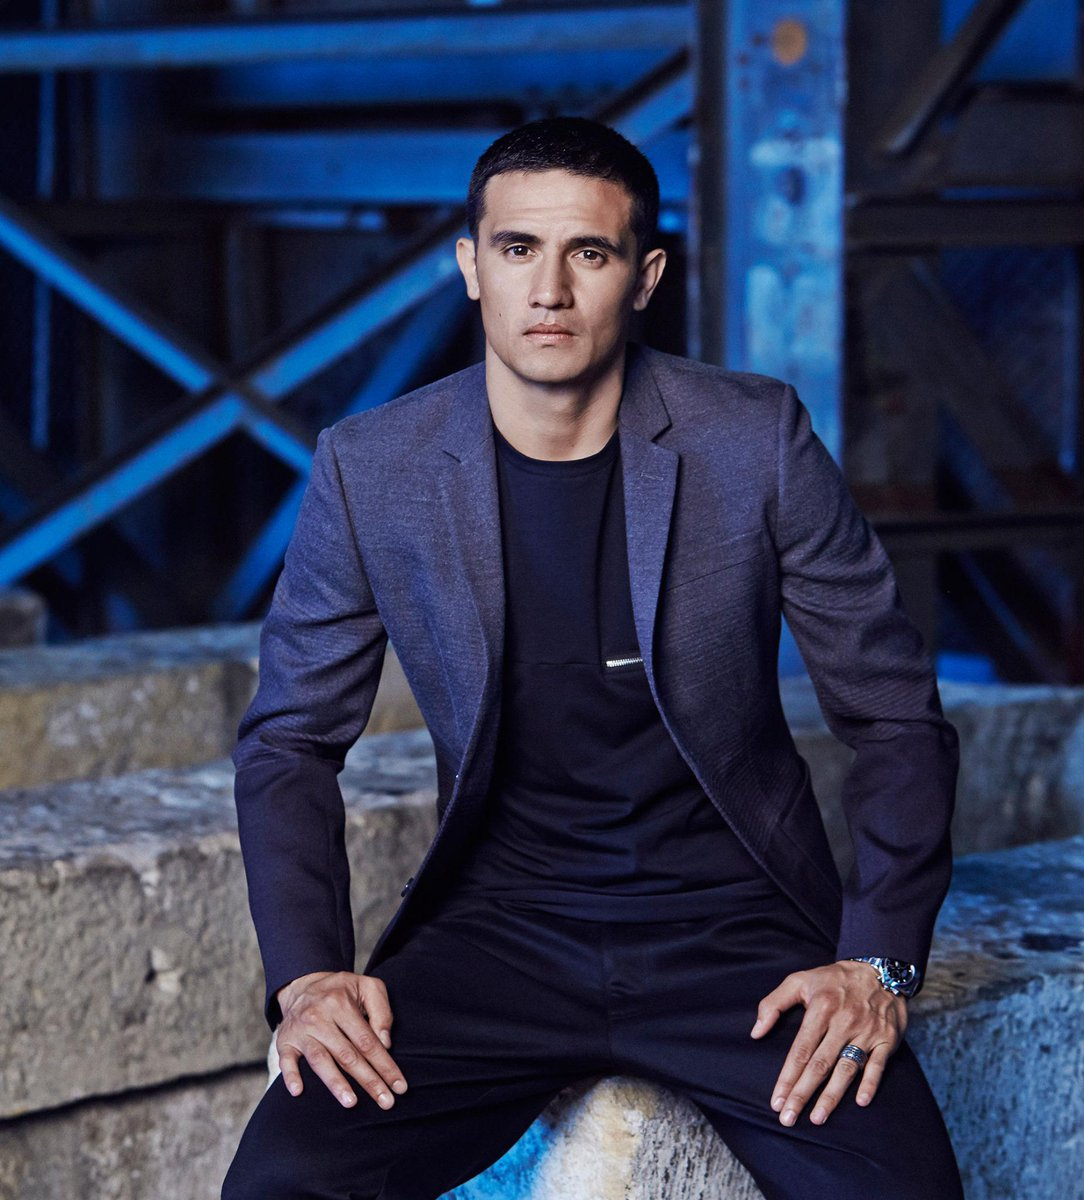 We are hugely excited to announce we're publishing @Tim_Cahill's autobio in late 2015! #KingCahill #CahillMemoir http://t.co/KwliTx7bid